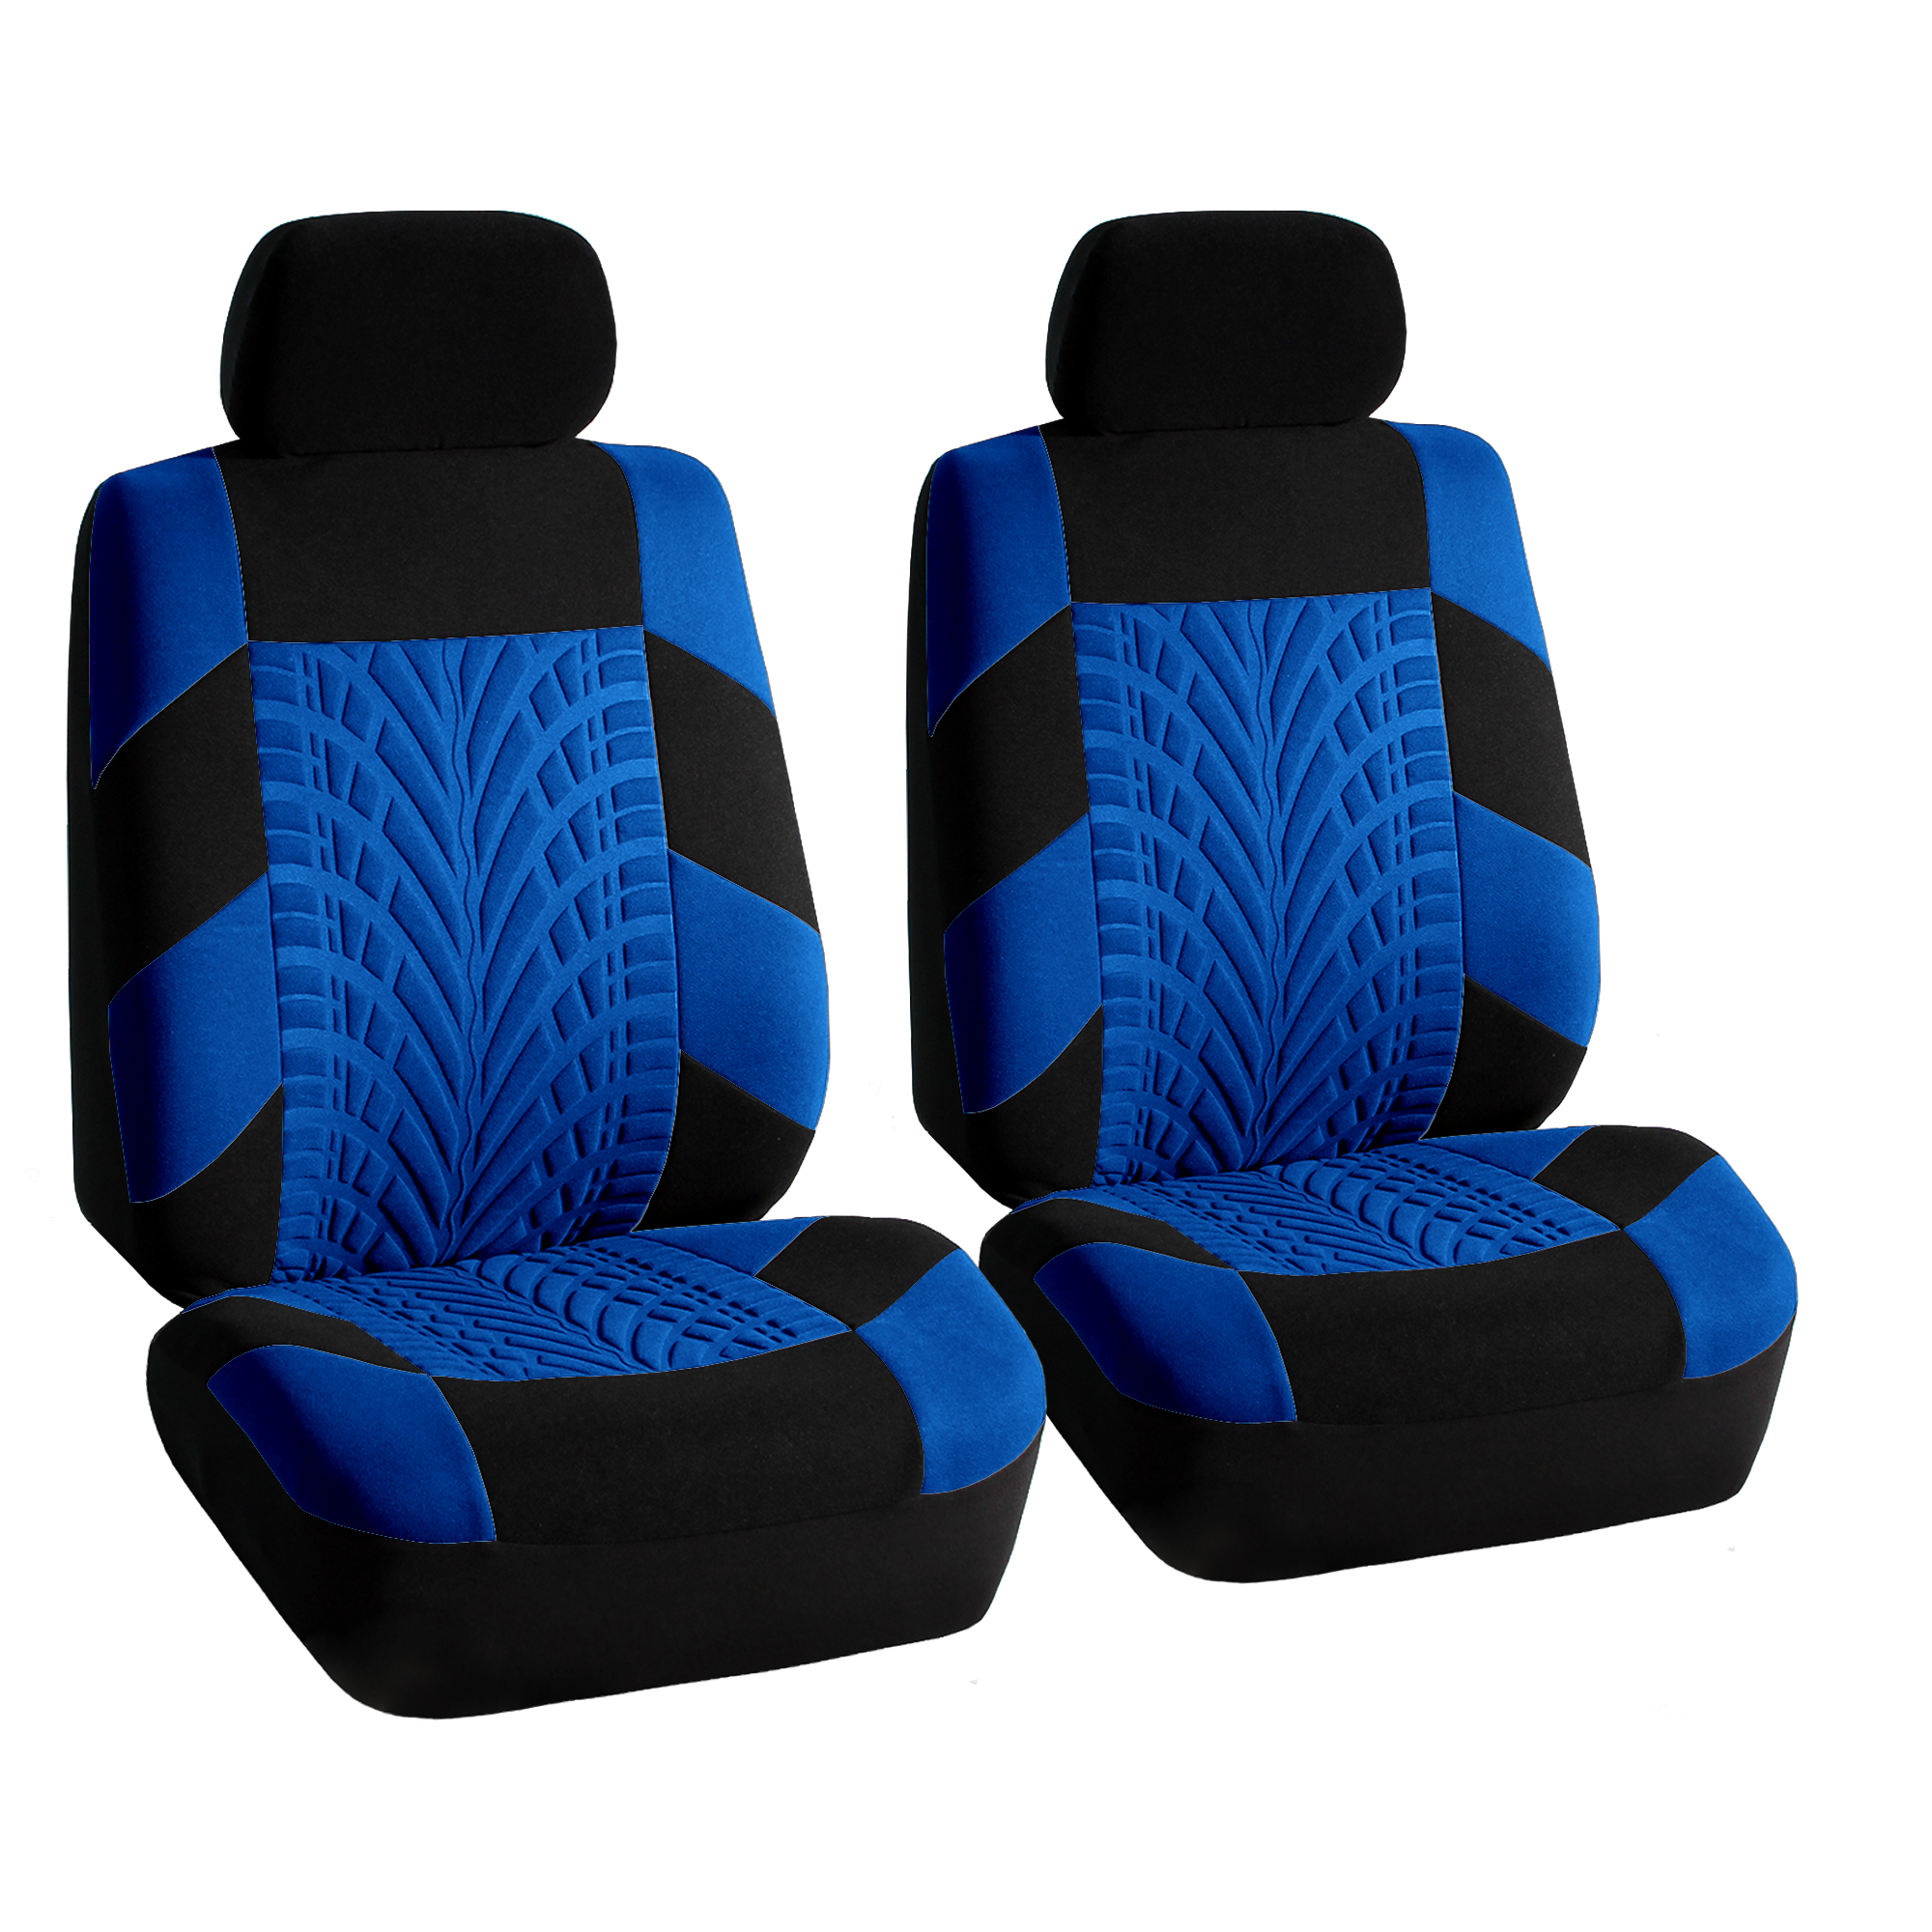 blue car seat covers set for auto w floor mat ebay. Black Bedroom Furniture Sets. Home Design Ideas